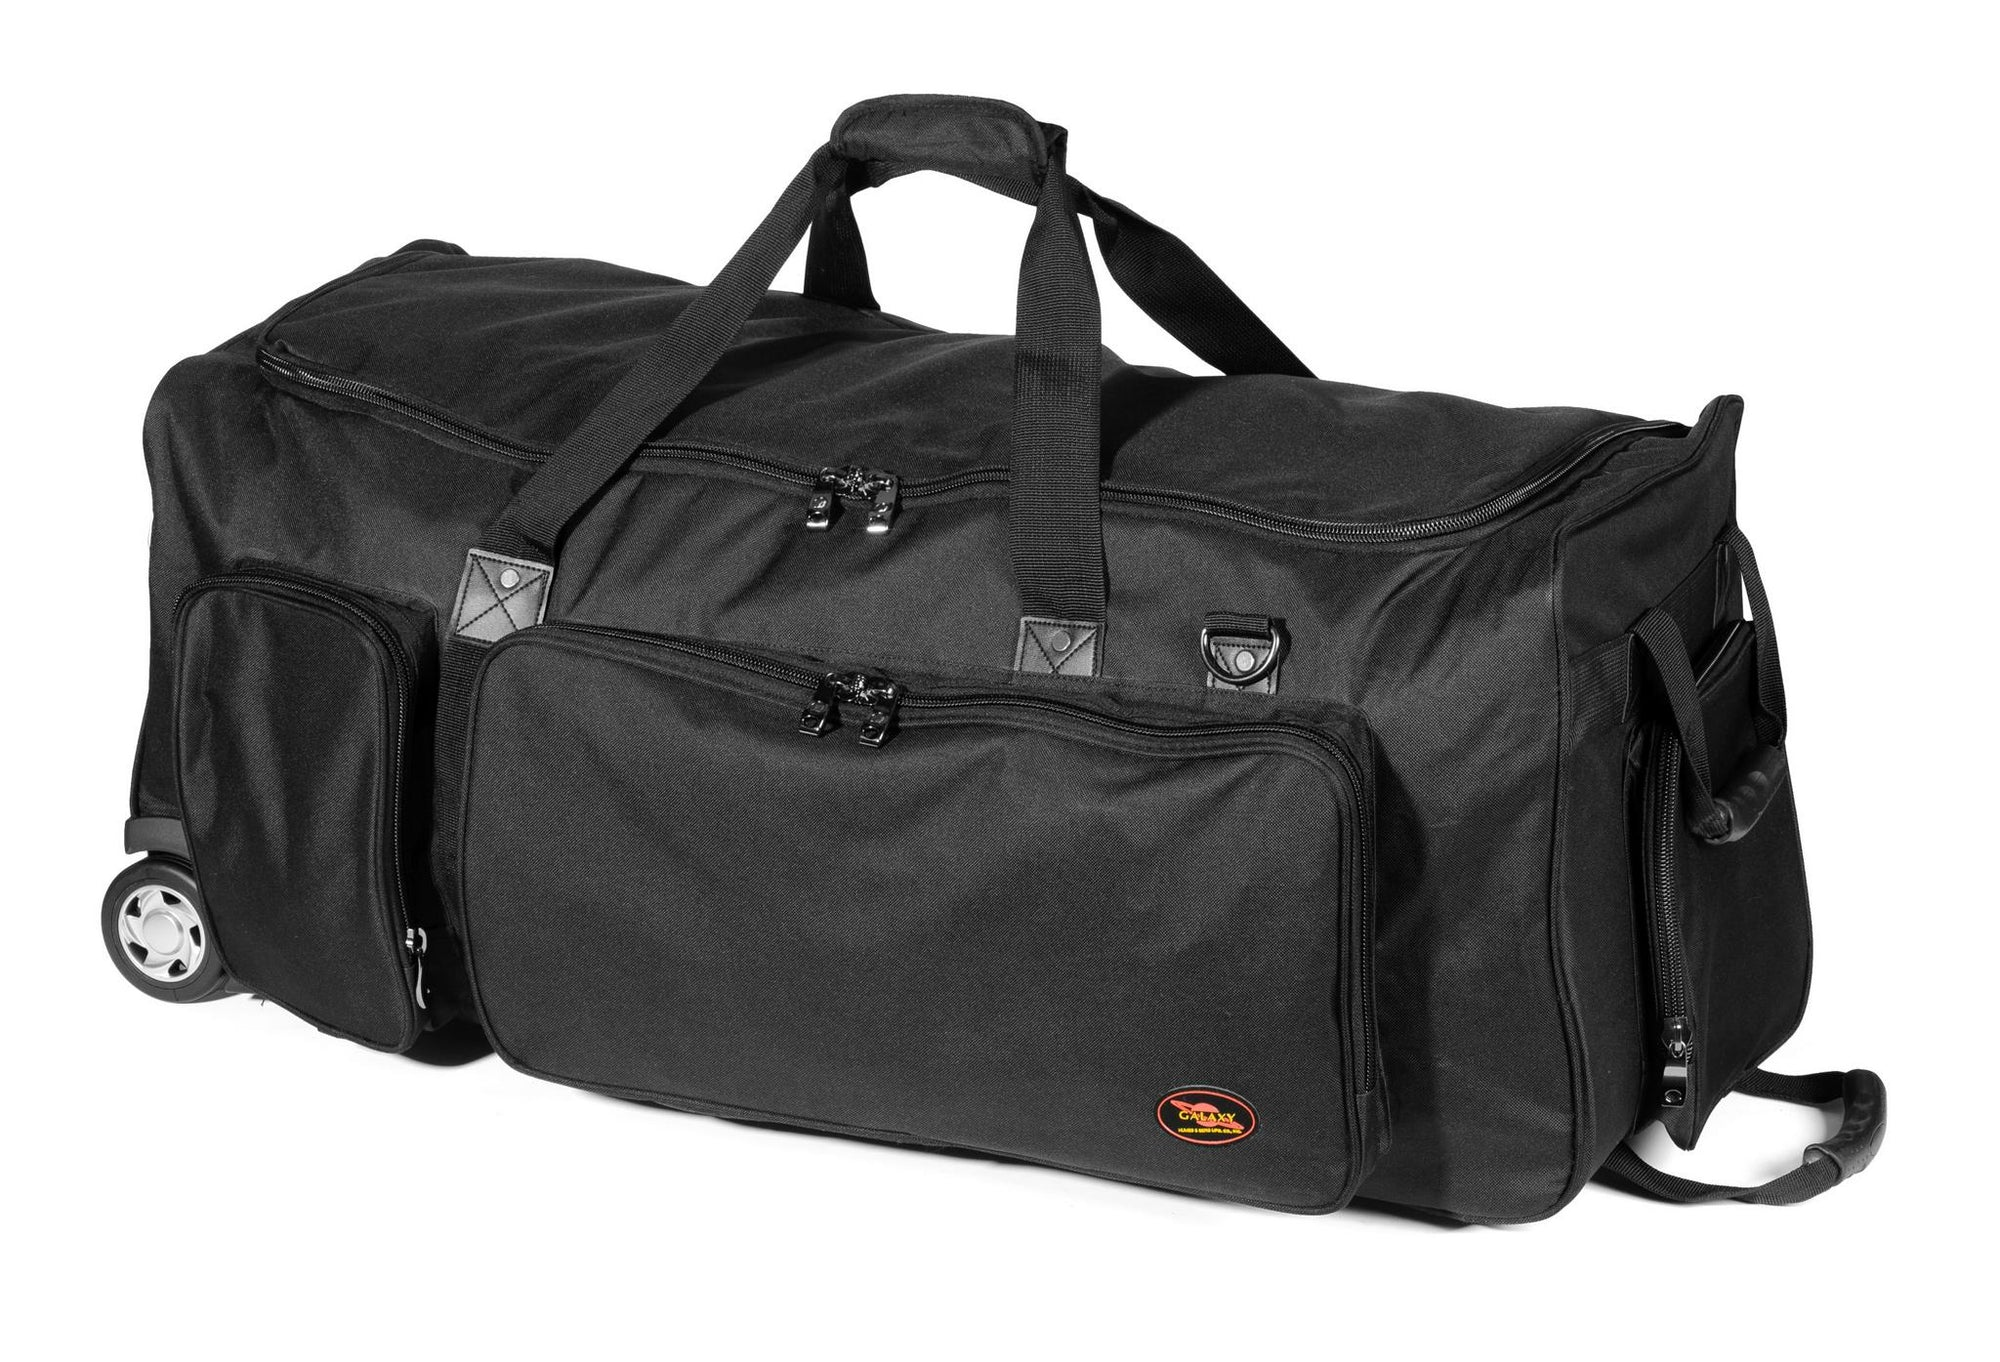 H&B  Galaxy 30.5 x 14.5 Inches Companion Bag Tilt-n-Pull